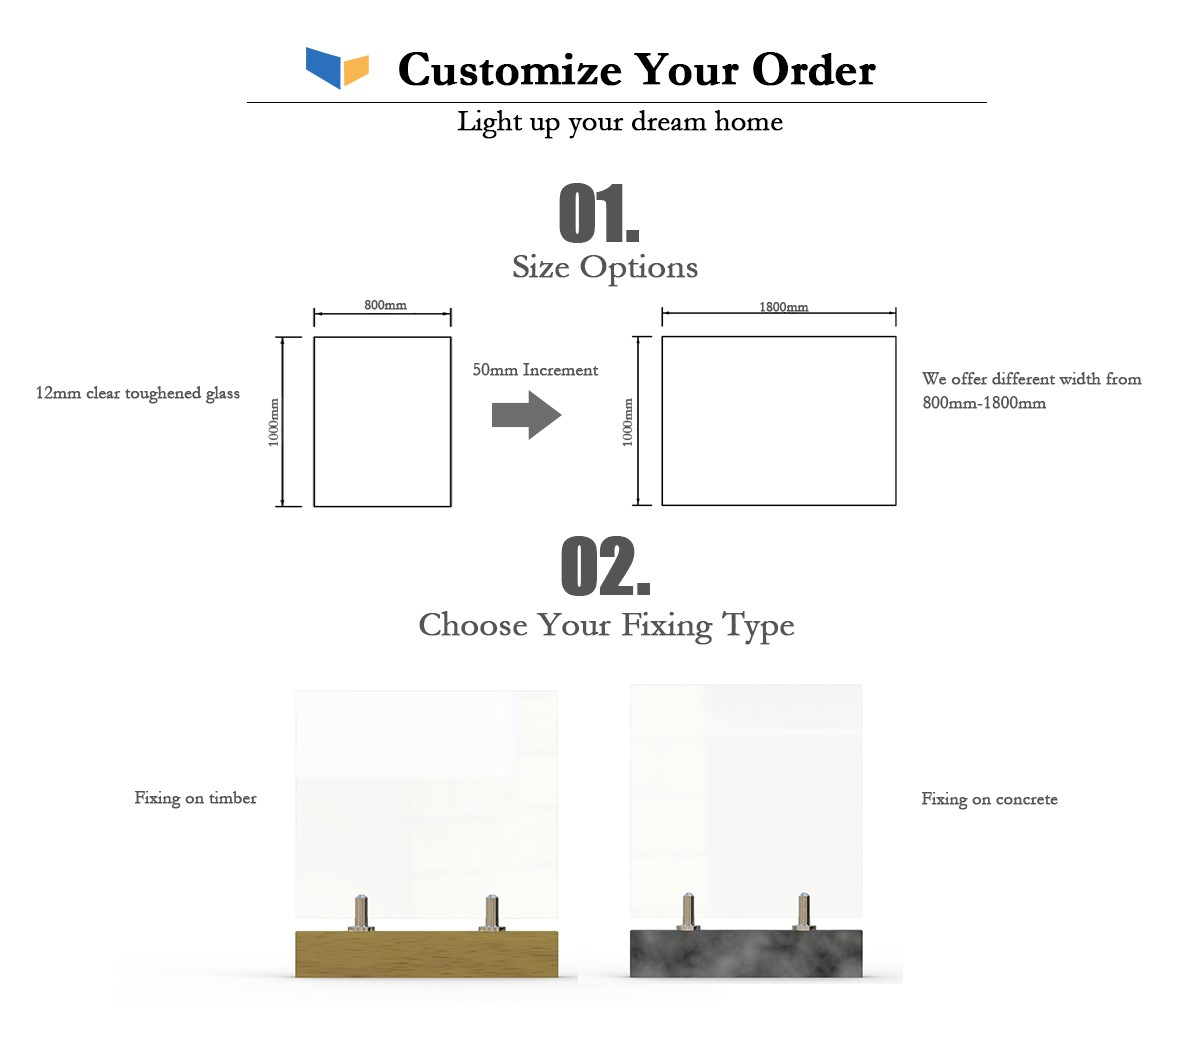 squcustomize-your-order-round-revised.jpg